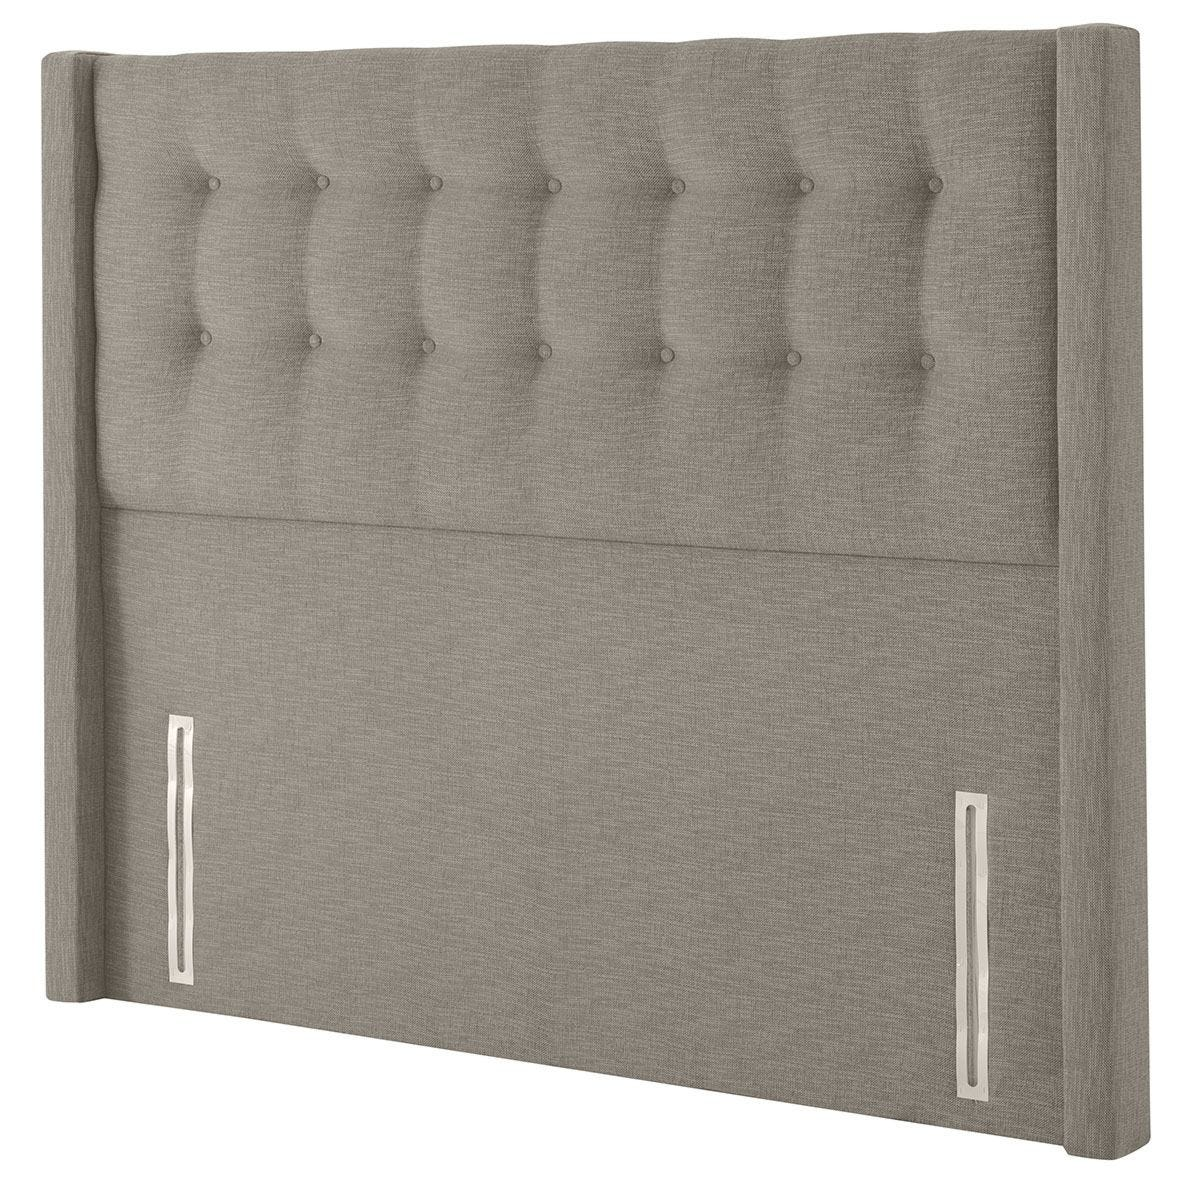 Silentnight Bloomsbury Sand Headboard - Super King